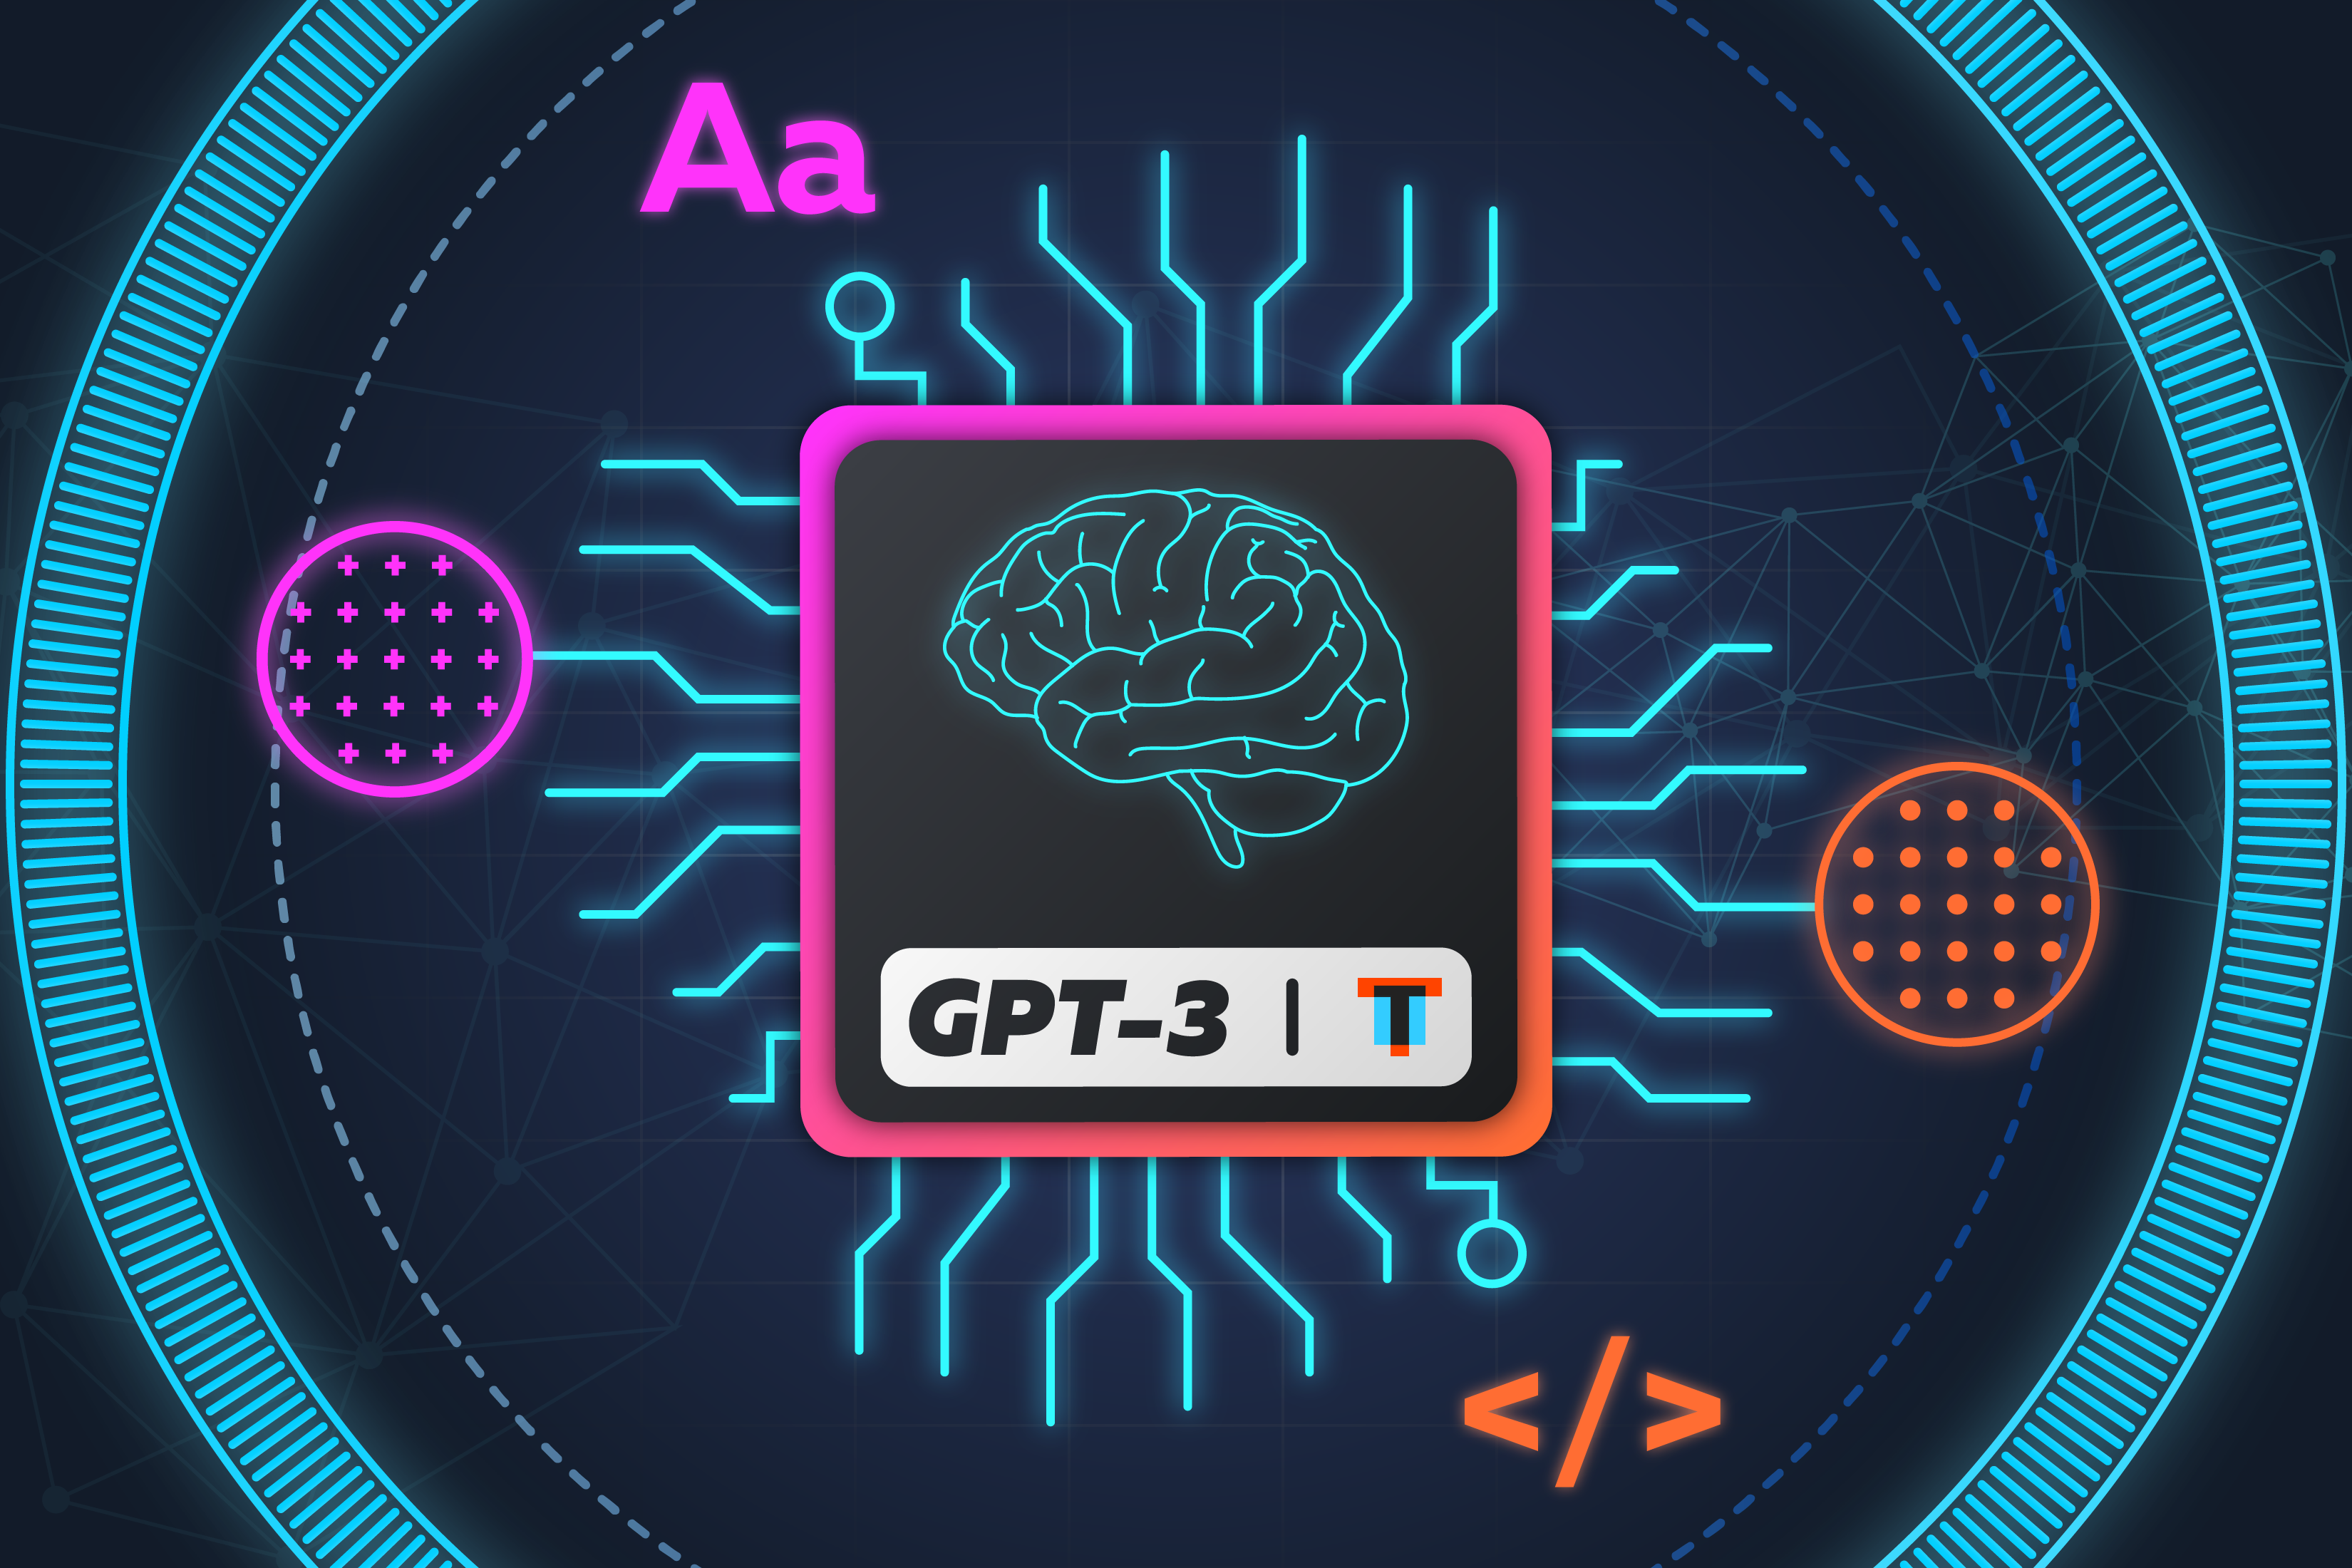 Meet GPT-3, probably, the world's first real AI as we understand it